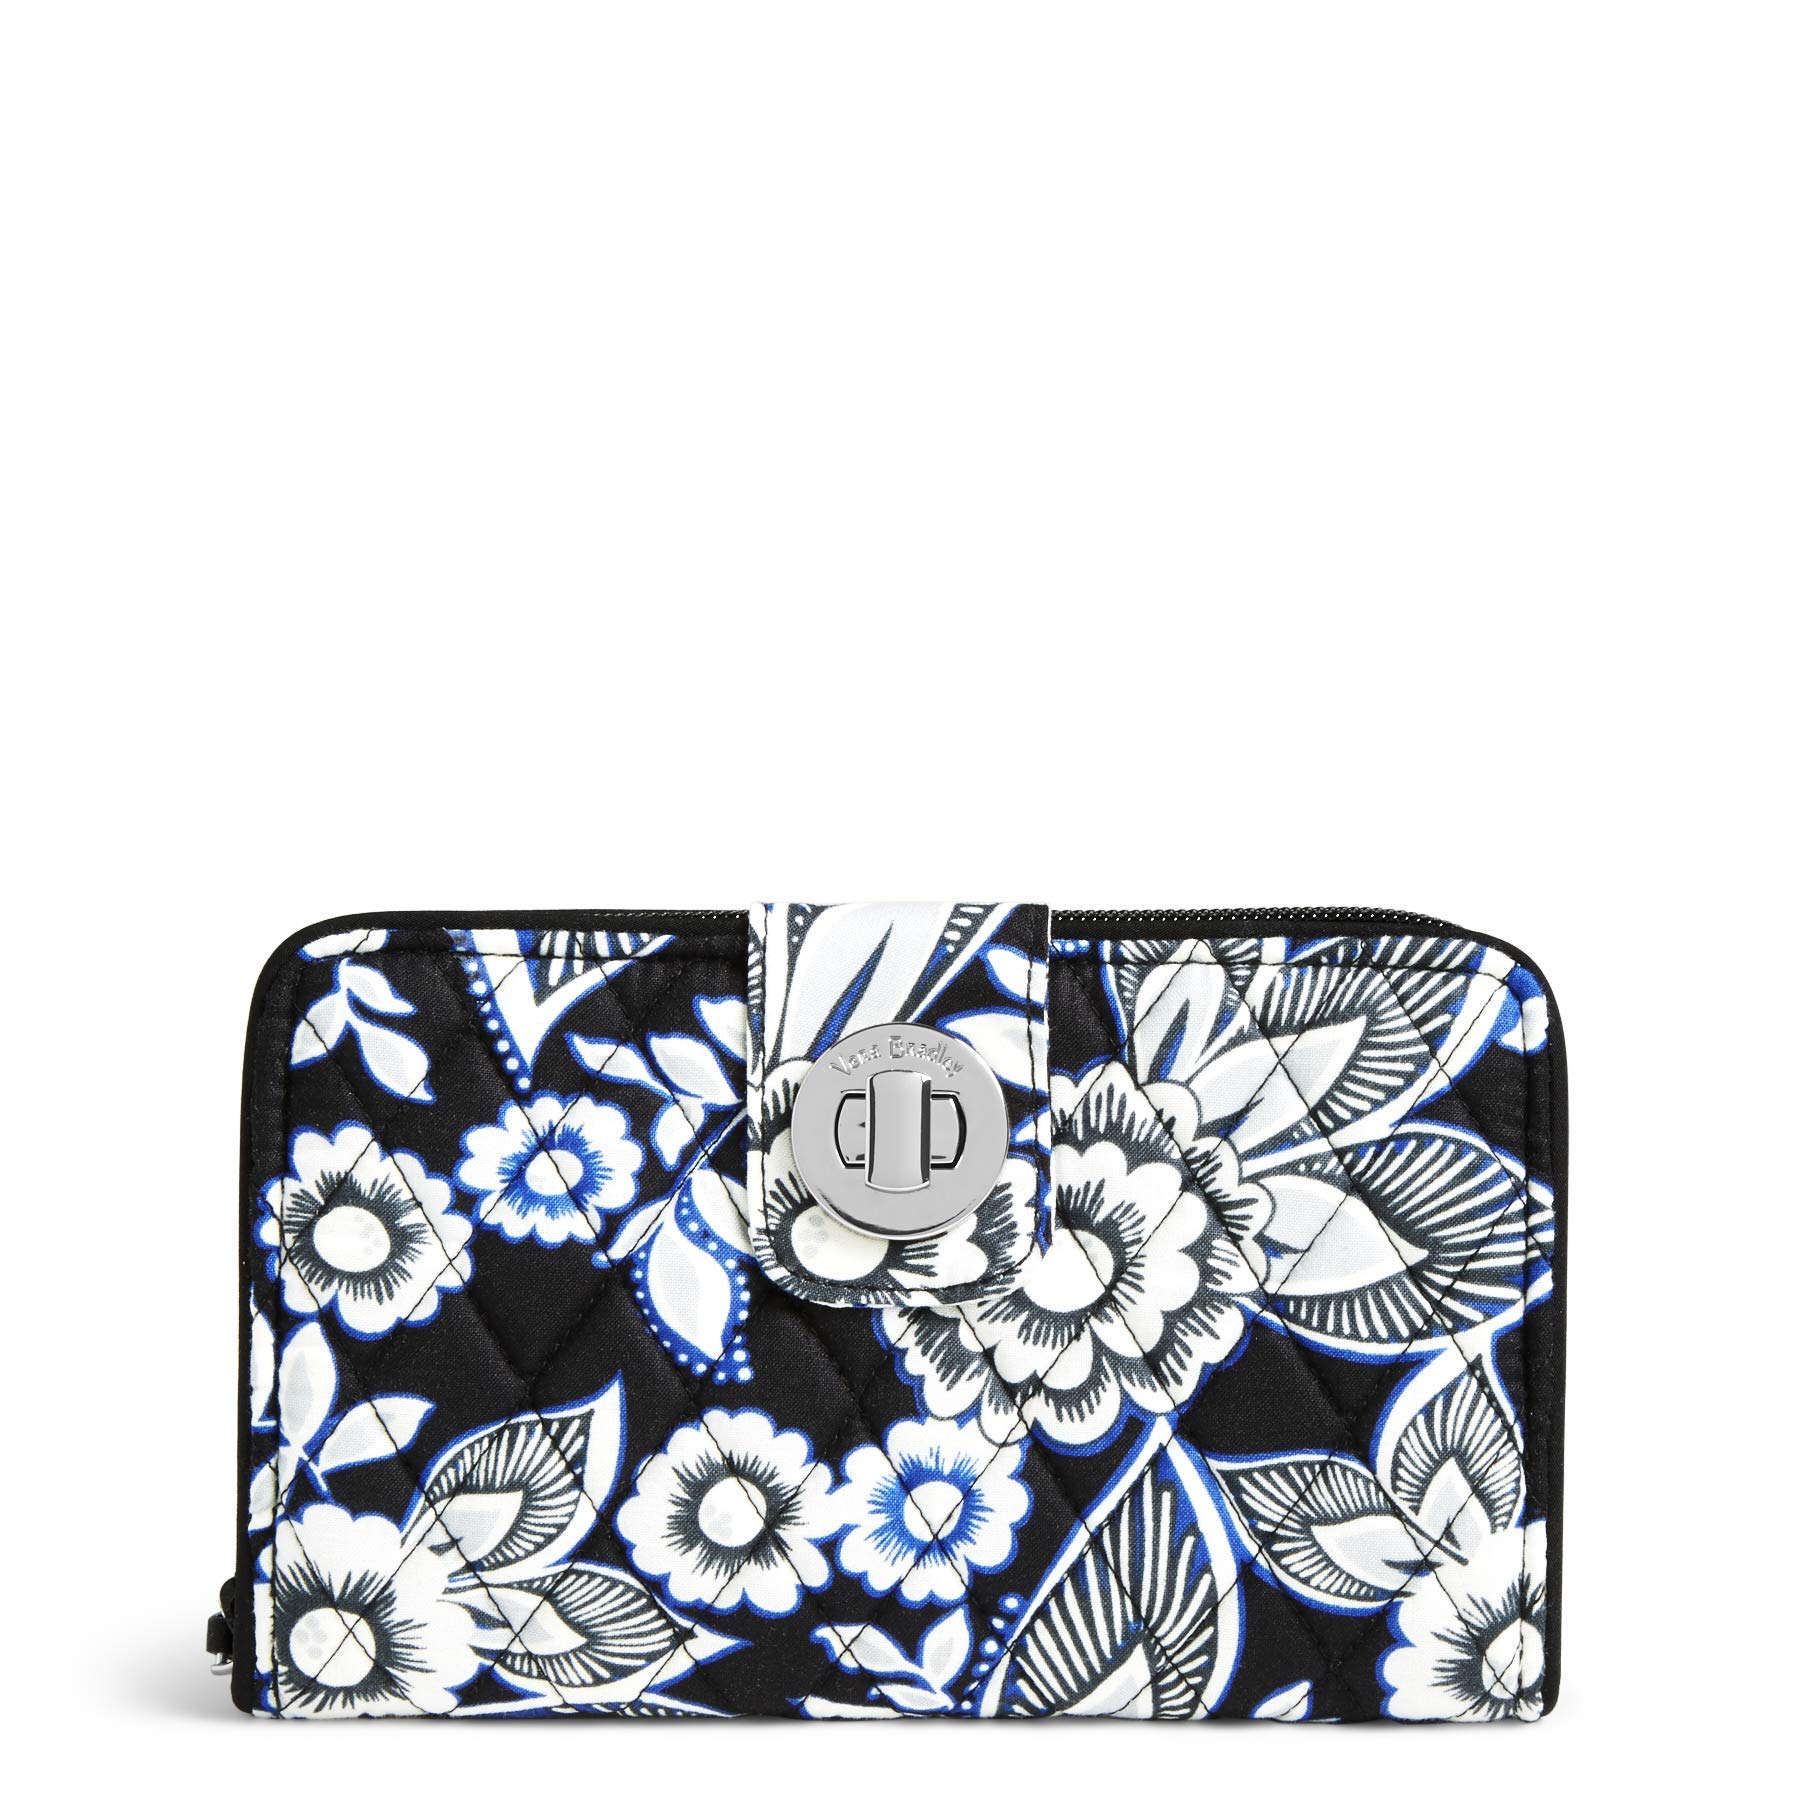 Vera Bradley Women's RFID Turnlock Wallet, snow lotus, One Size by Vera Bradley